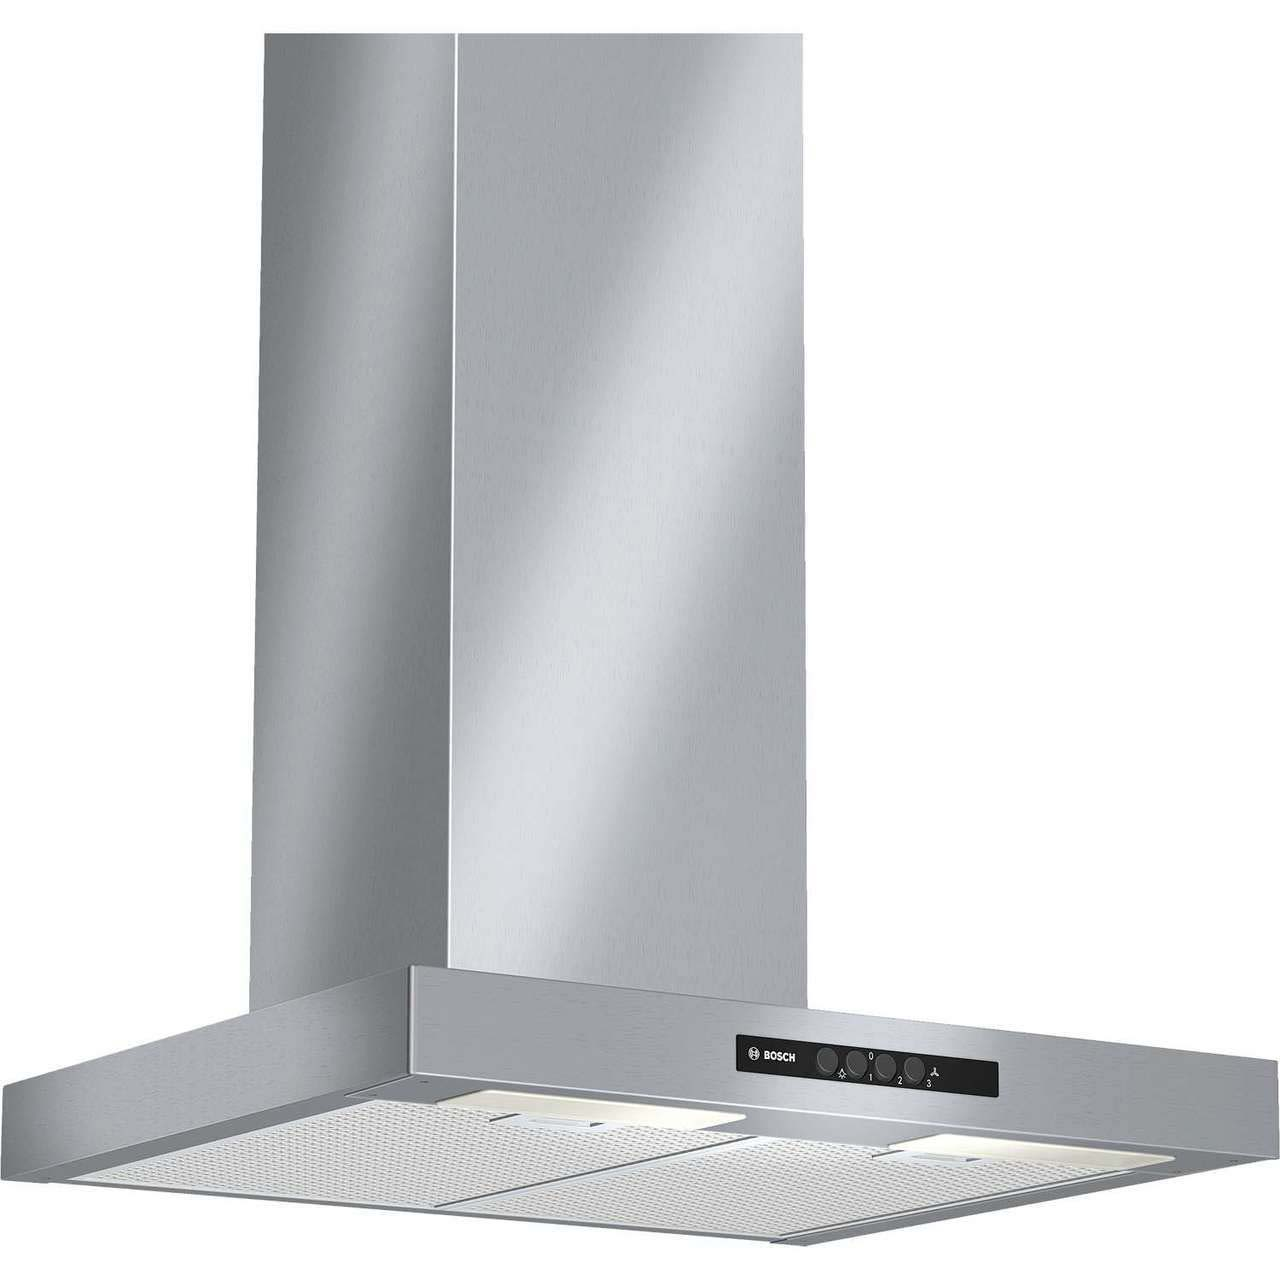 Bosch Chimney Extractor Hood | DWB06W452B